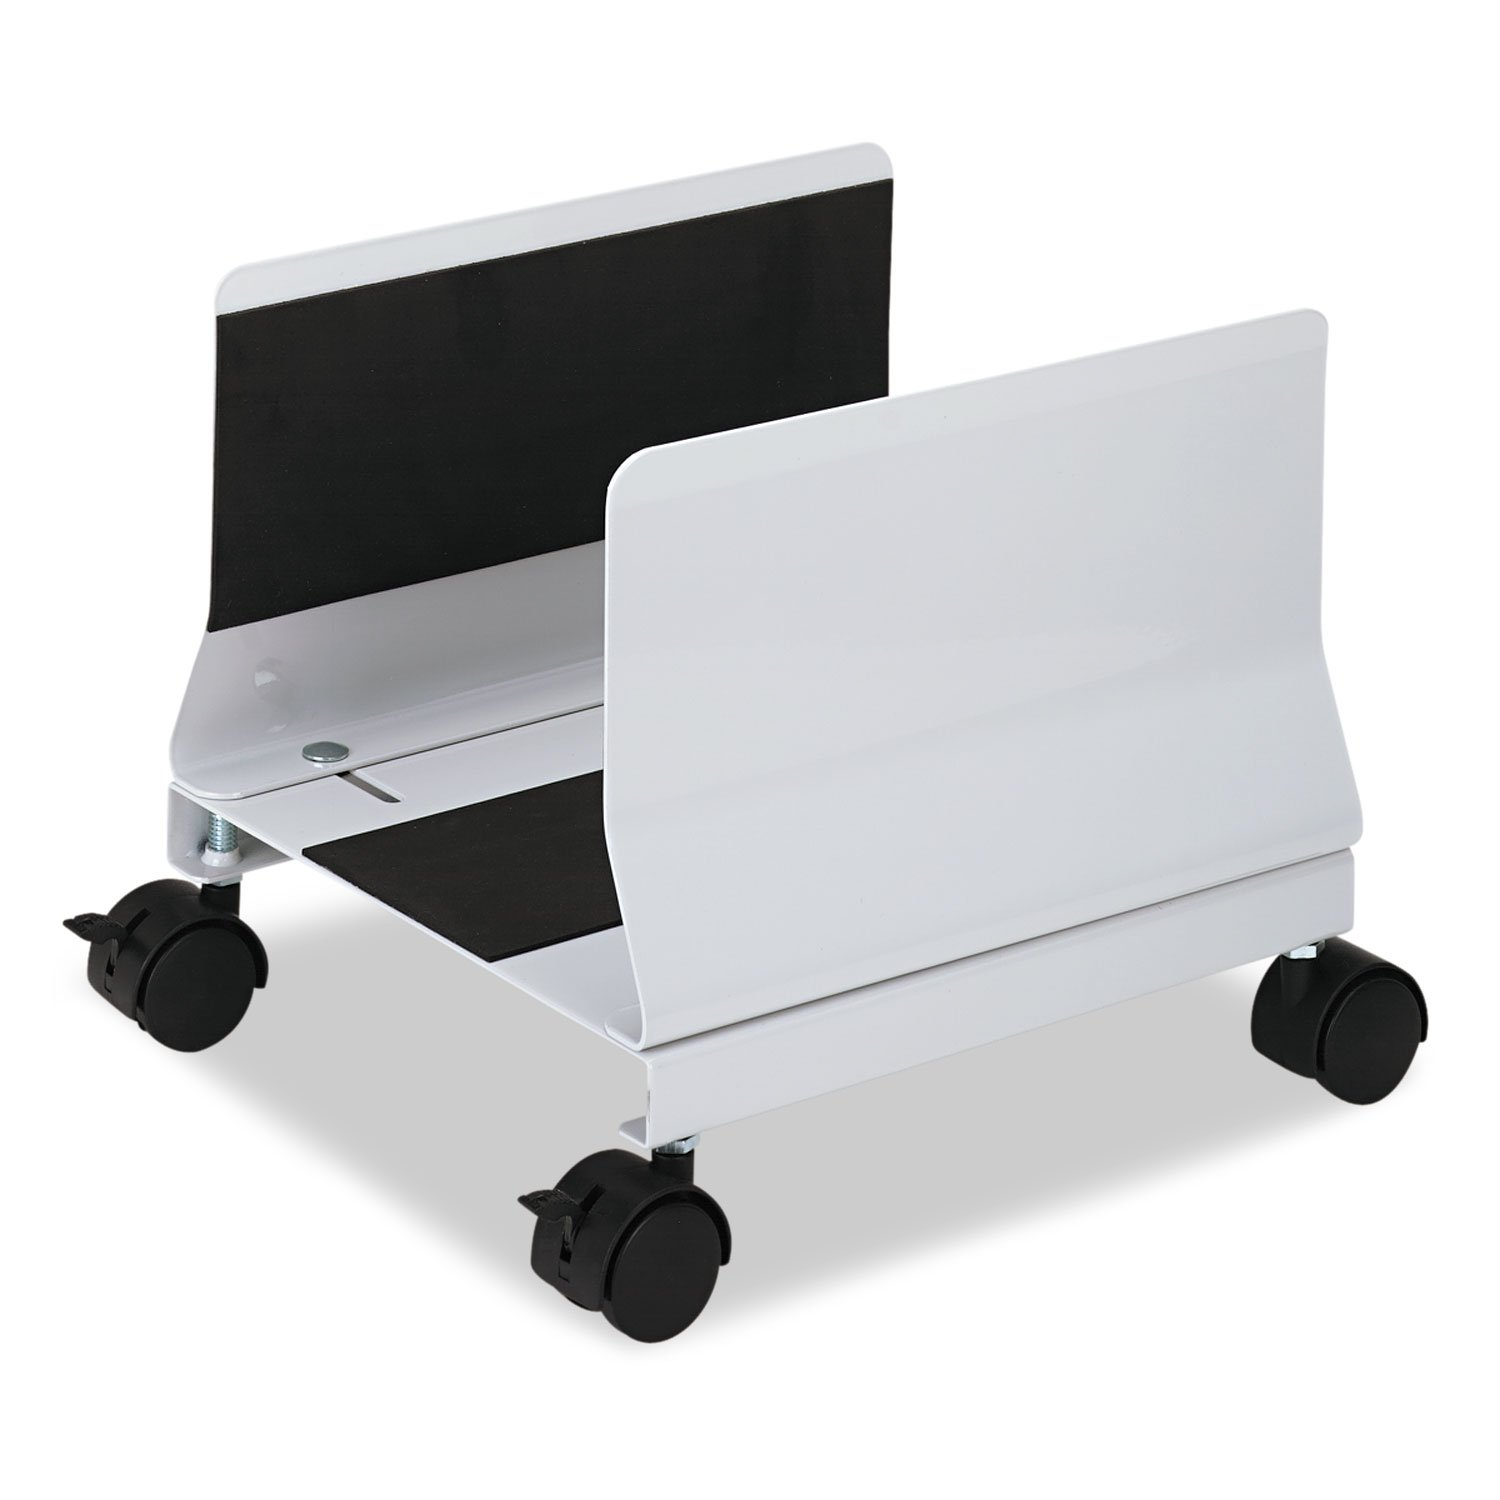 IVR54000 - Innovera Metal Mobile CPU Stand